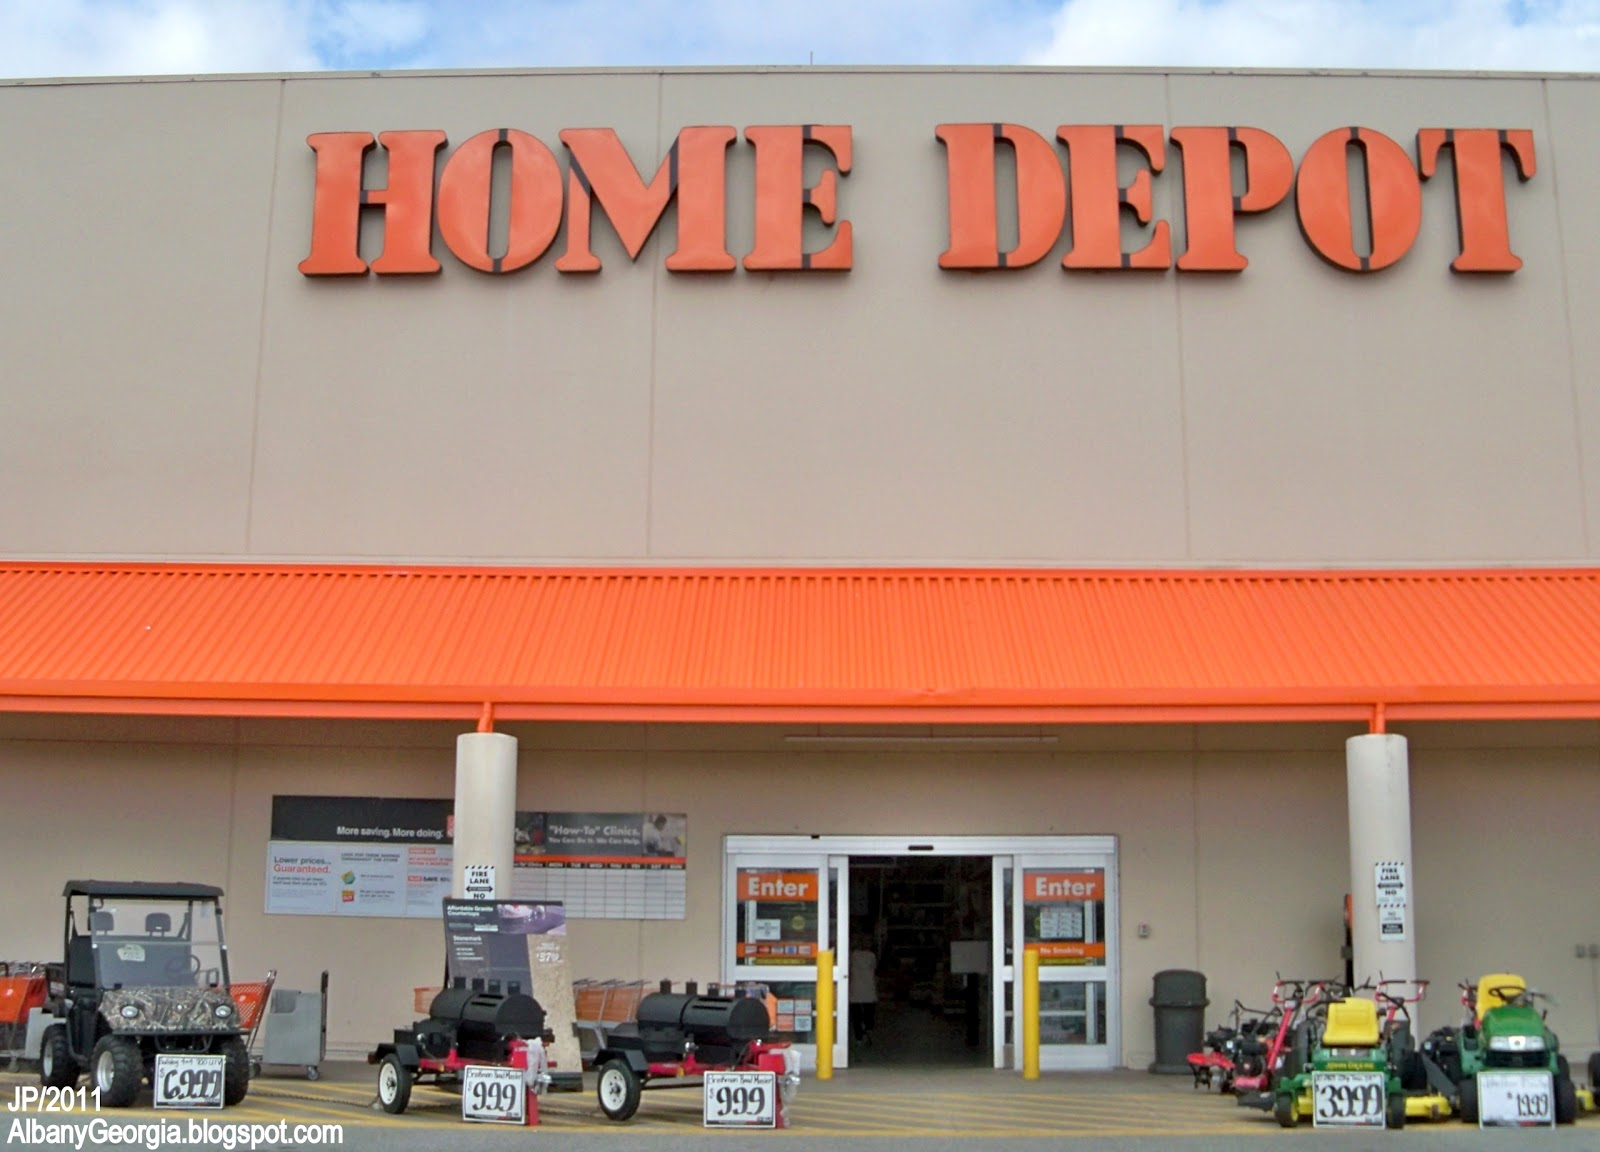 Bank Home Depot Albany Georgia Dougherty Restaurant Bank Hotel Attorney Dr